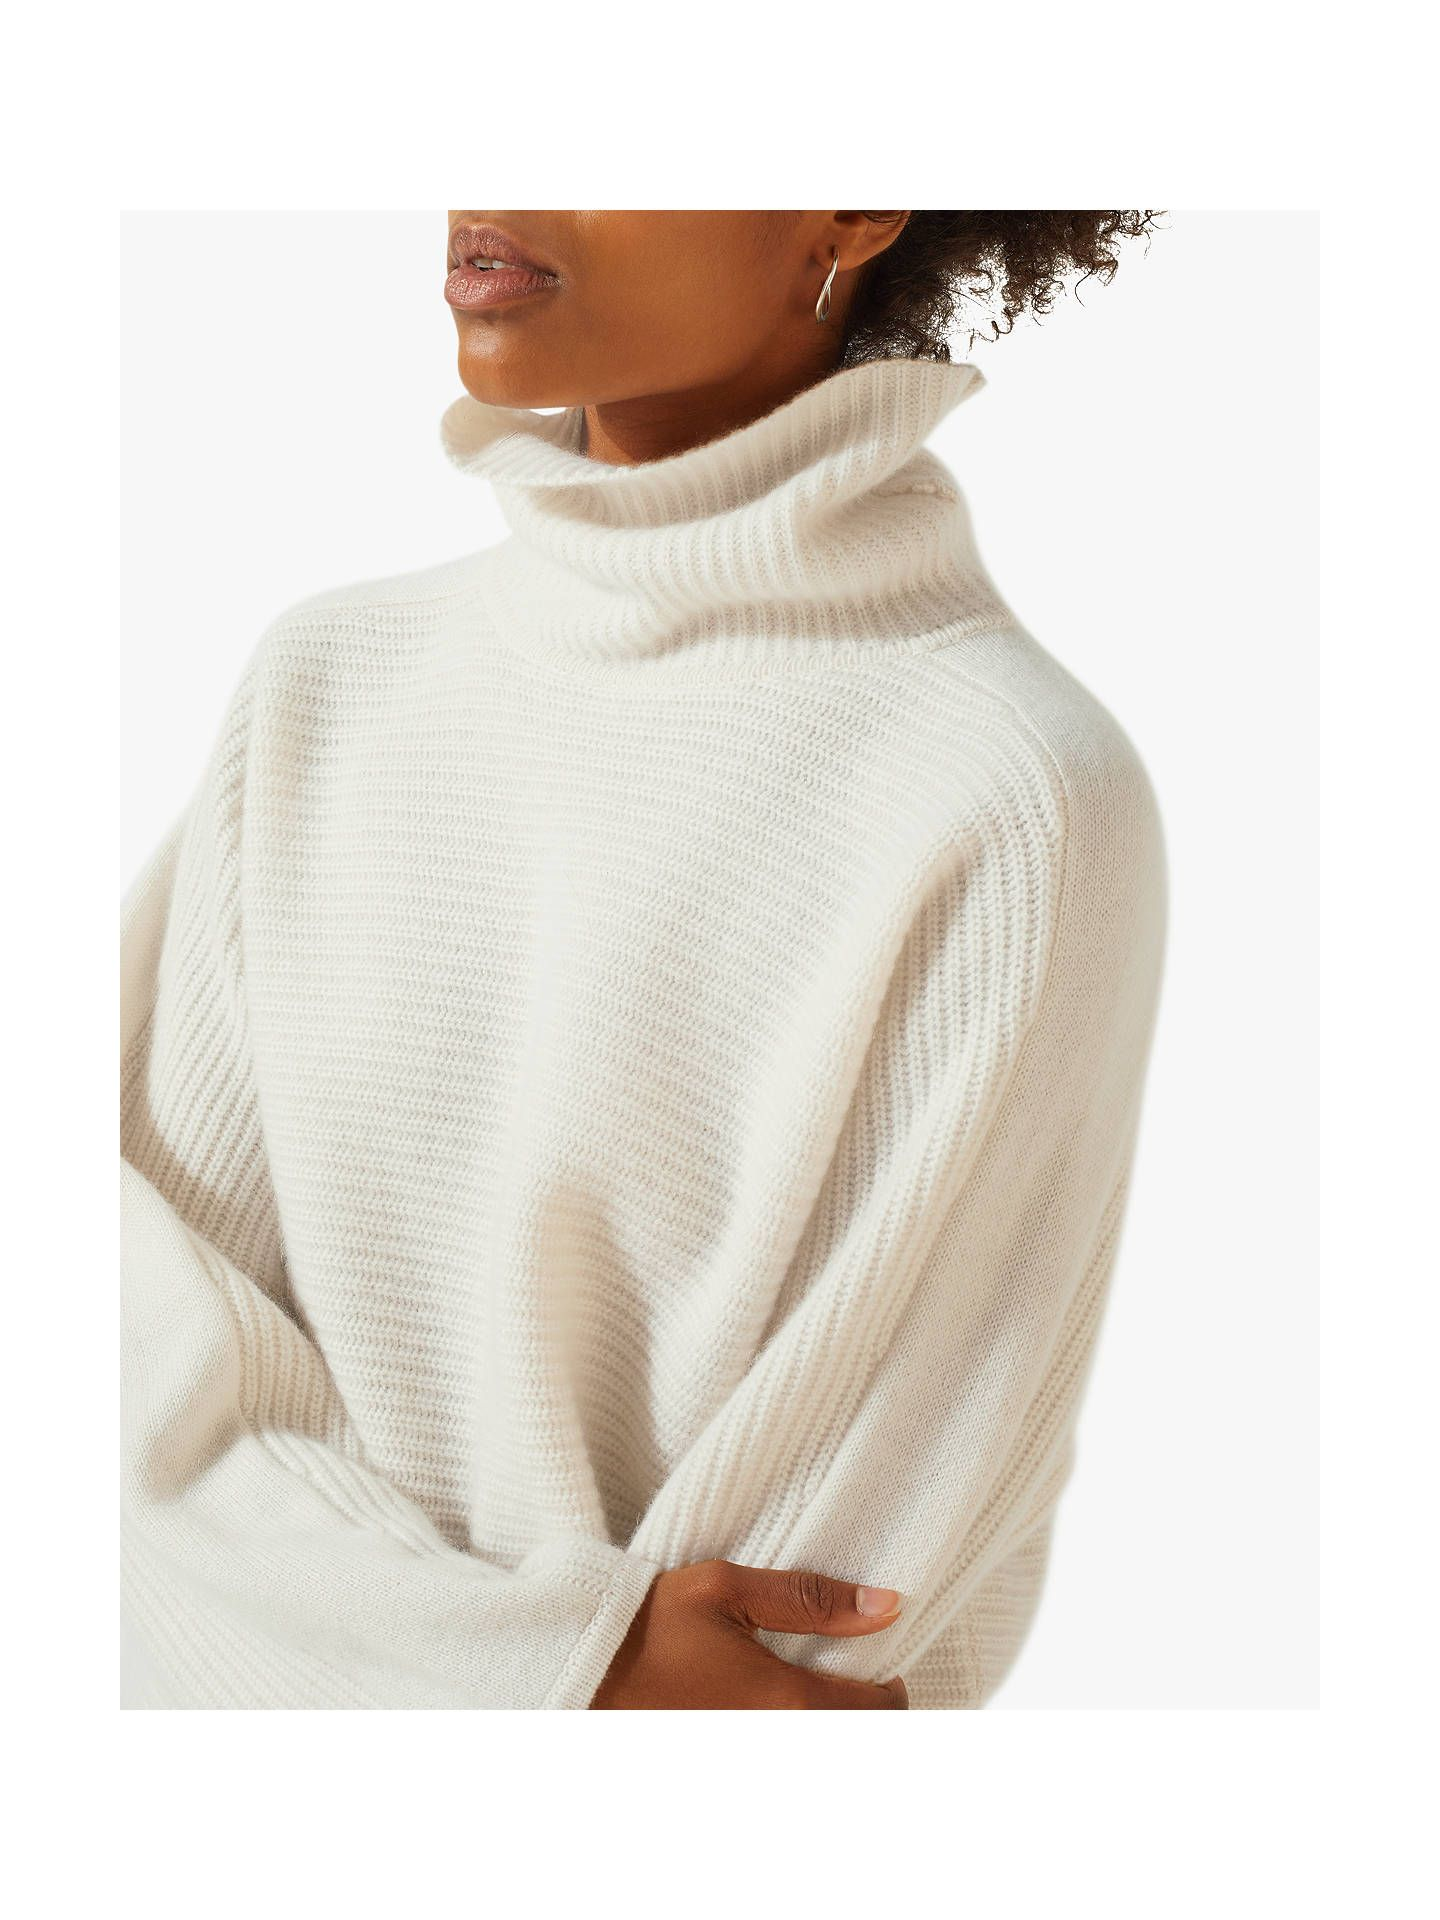 293005a1d9d1e BuyJigsaw Ribbed Cashmere Jumper, Ivory, S Online at johnlewis.com ...